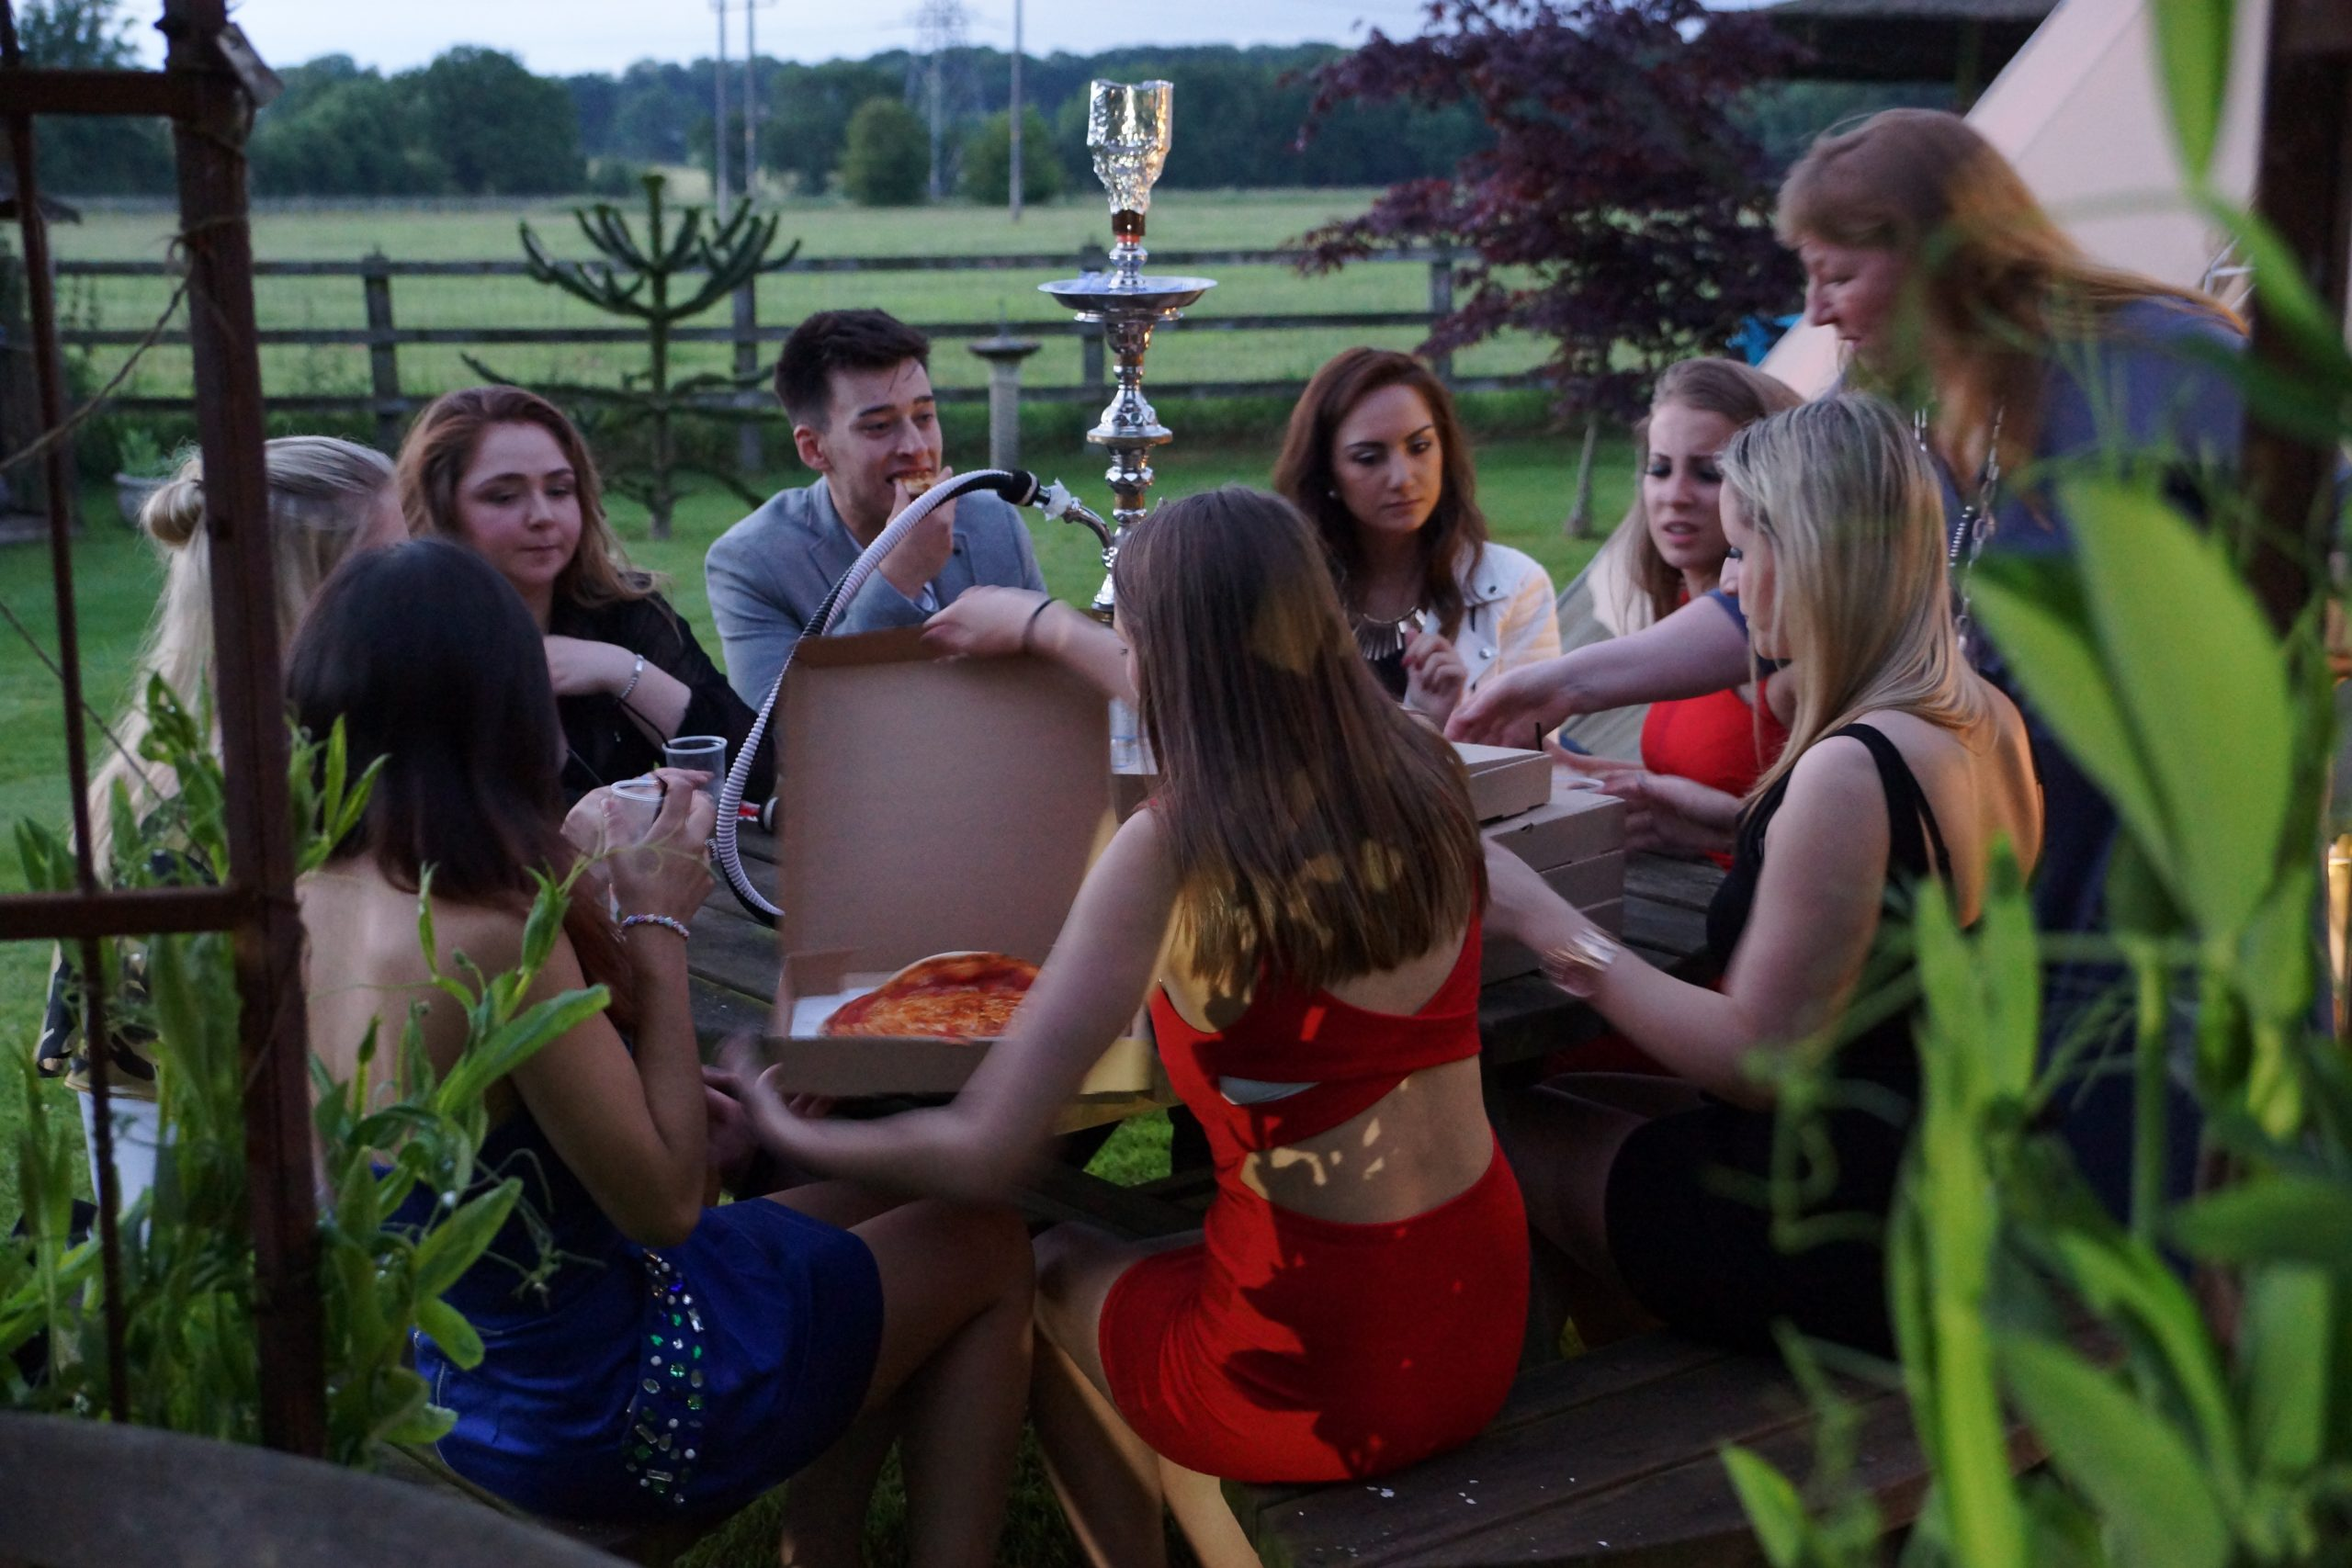 Luxury Shisha Hire Harpenden Hertfordshire Packages - Birthdays, Weddings, House Parties & Corporate Events